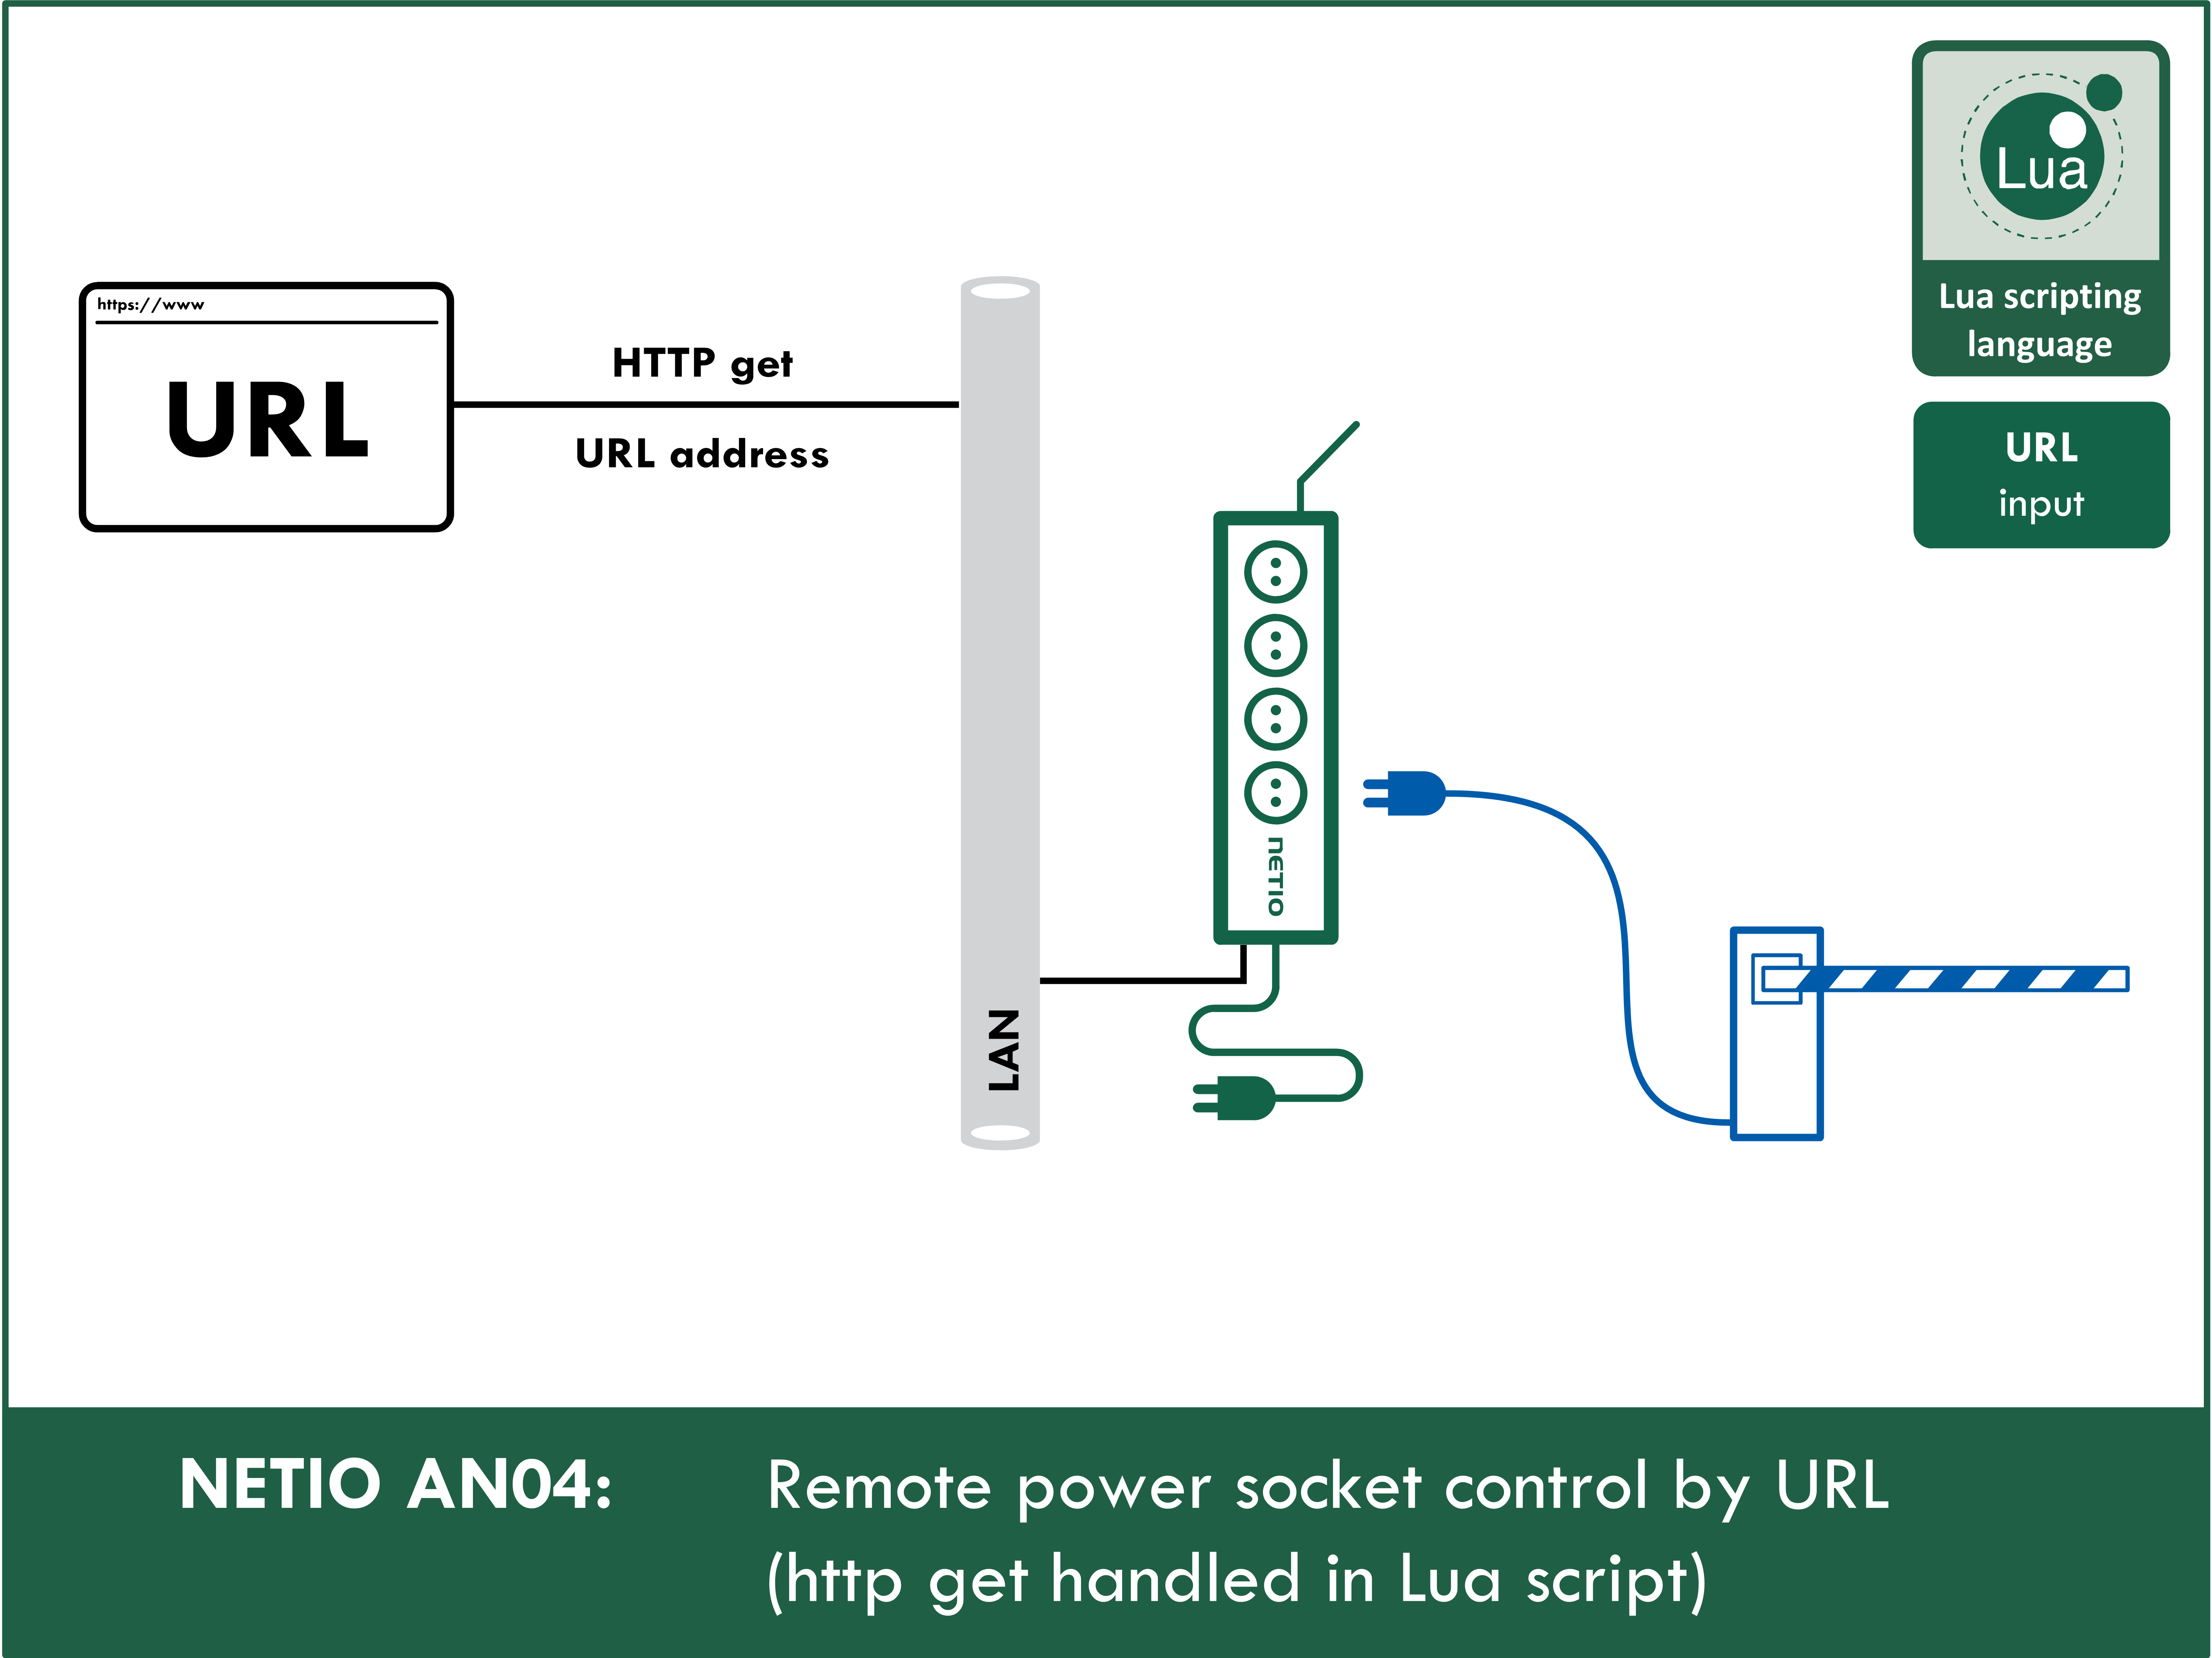 Remote power socket control by URL (http GET handled in Lua script)